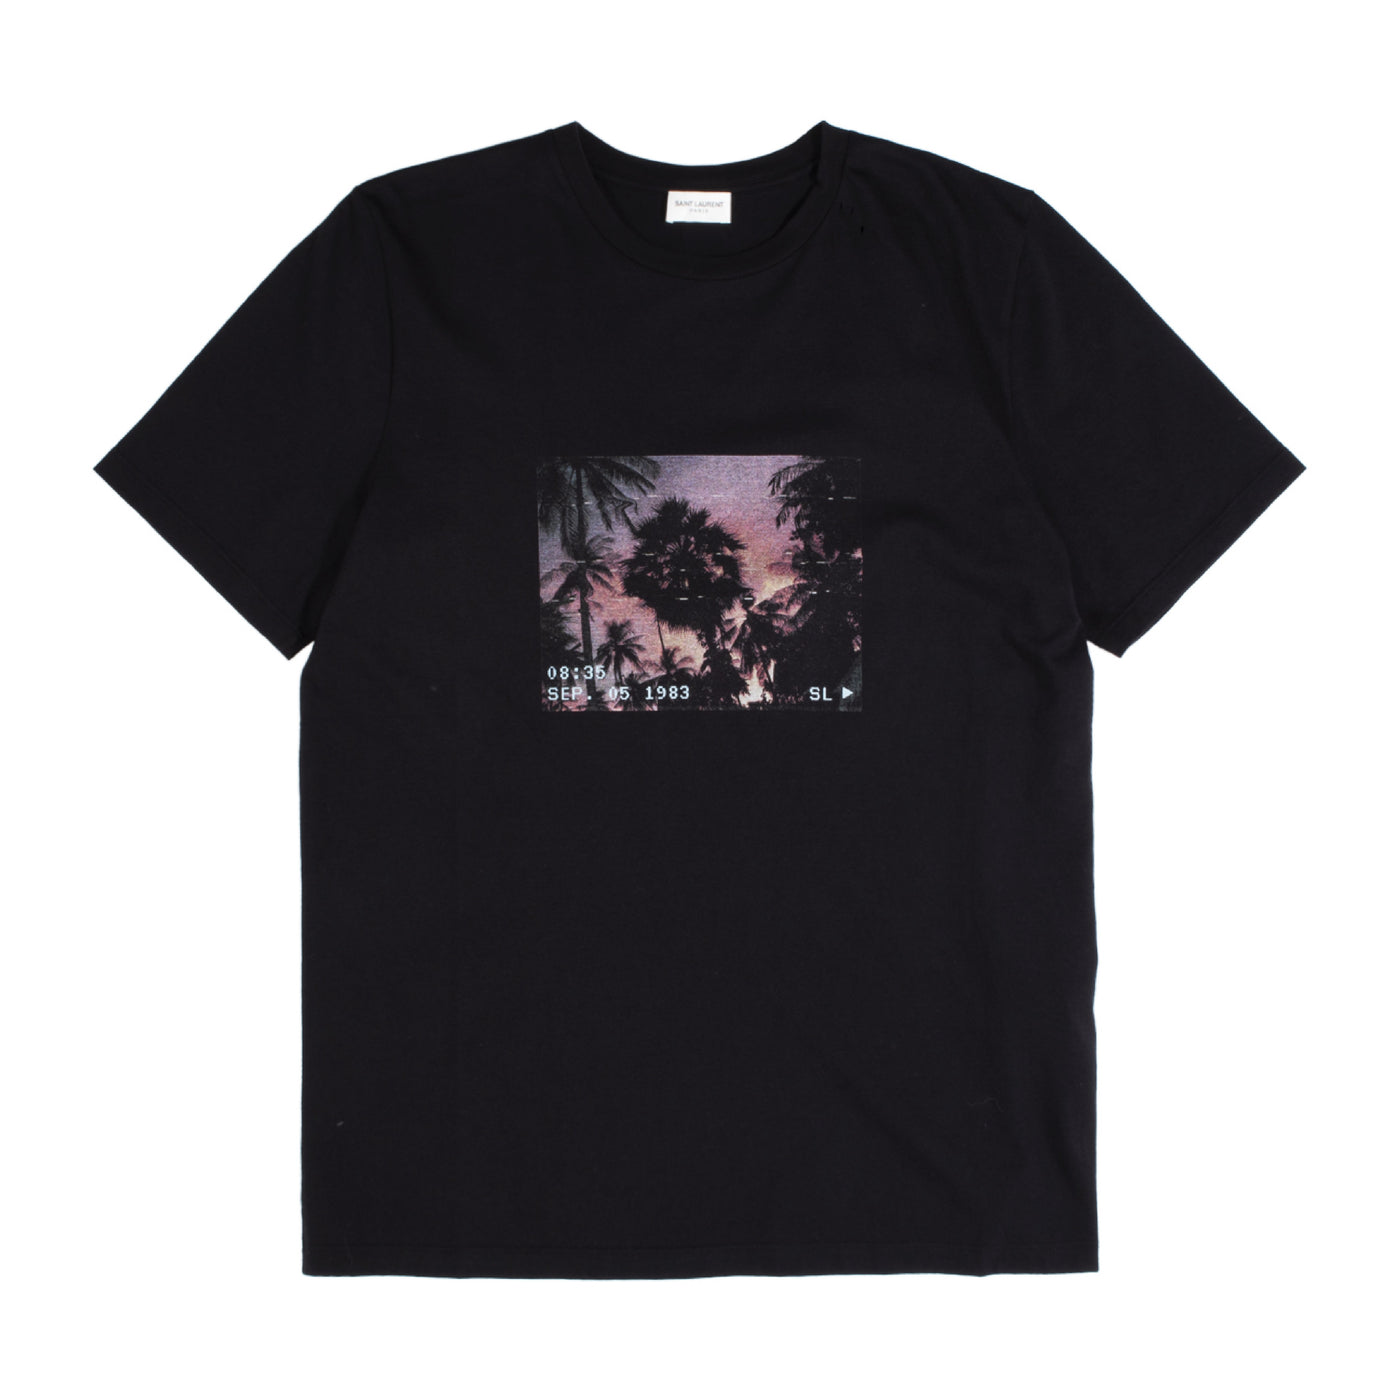 Load image into Gallery viewer, SAINT LAURENT PALM TREE GRAPHIC T-SHIRT BLACK